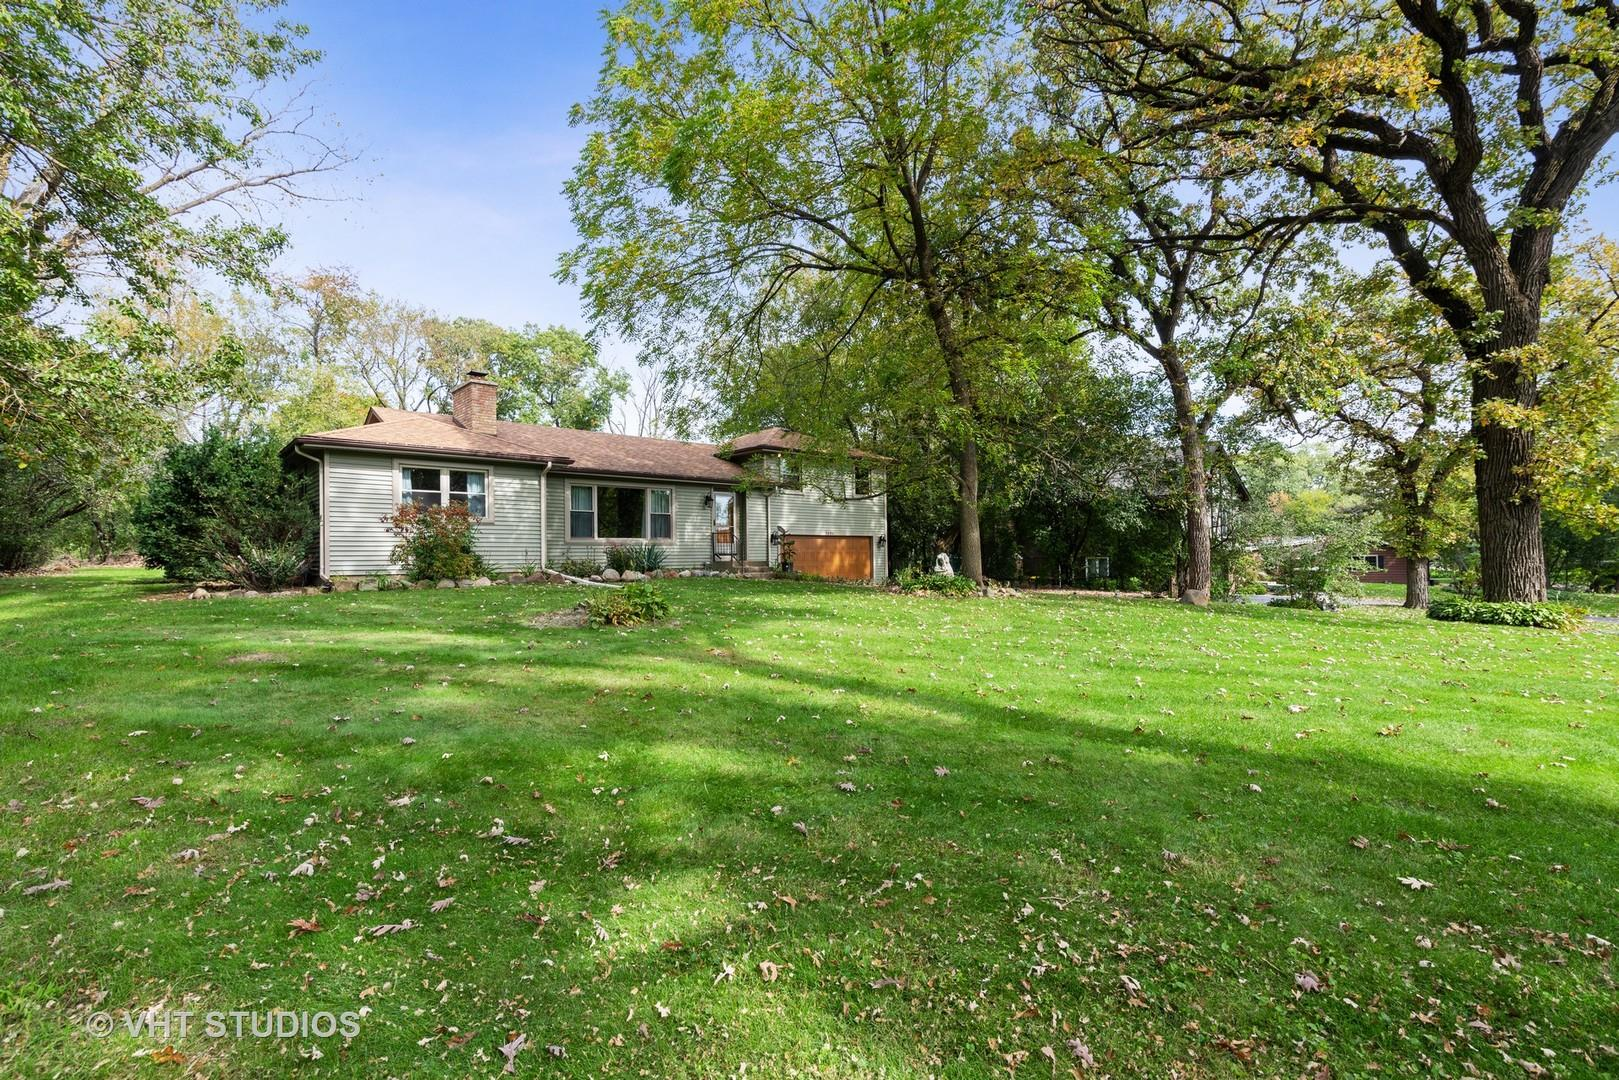 7404 CHESTERFIELD Road, Crystal Lake, IL 60012 - #: 10548064